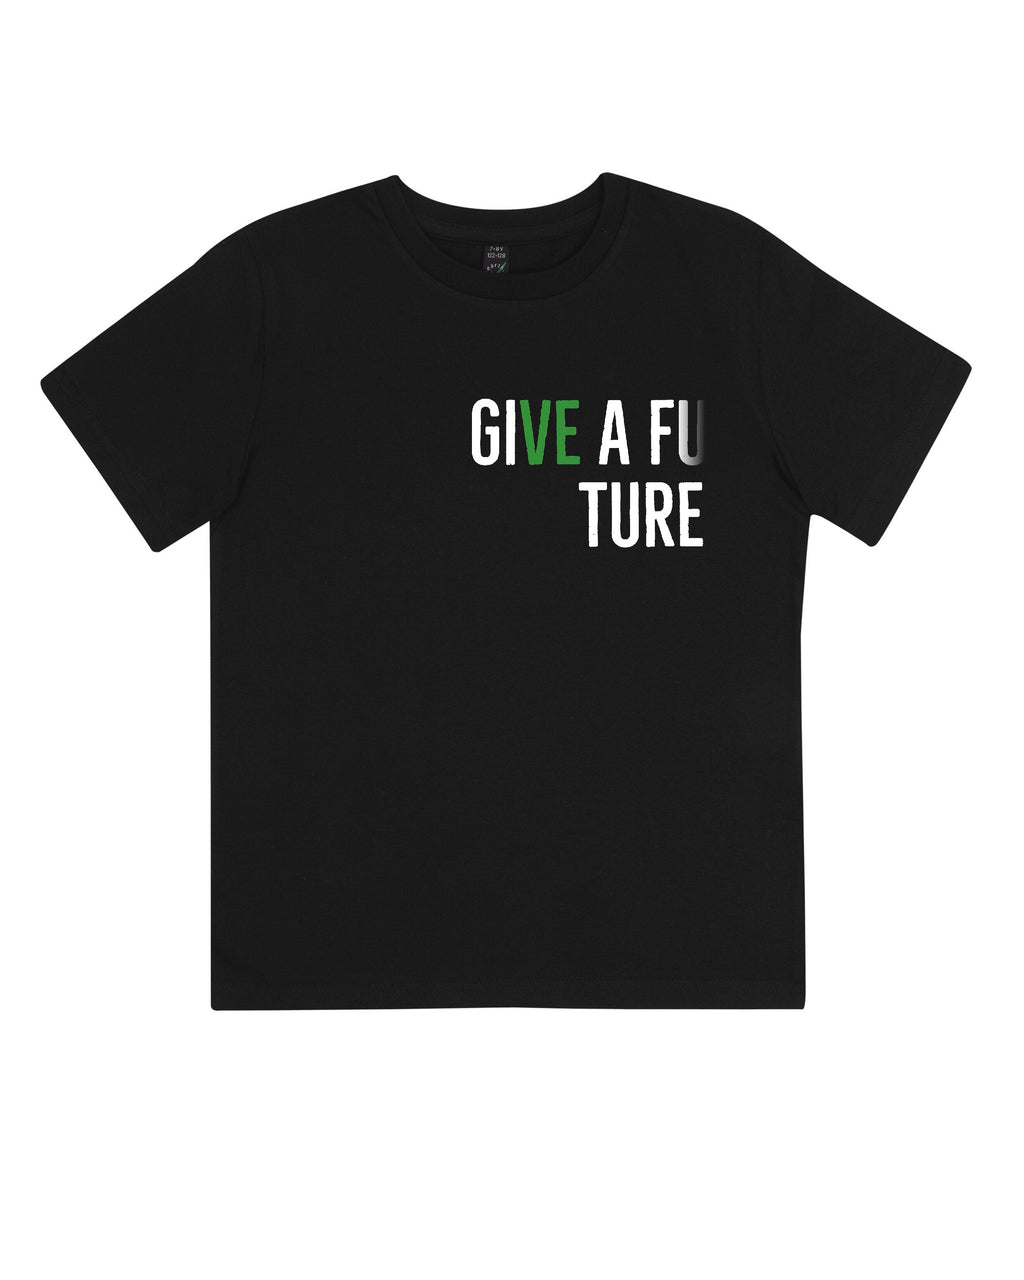 GIVE A FUTURE Original Kids Organic Cotton T-shirt